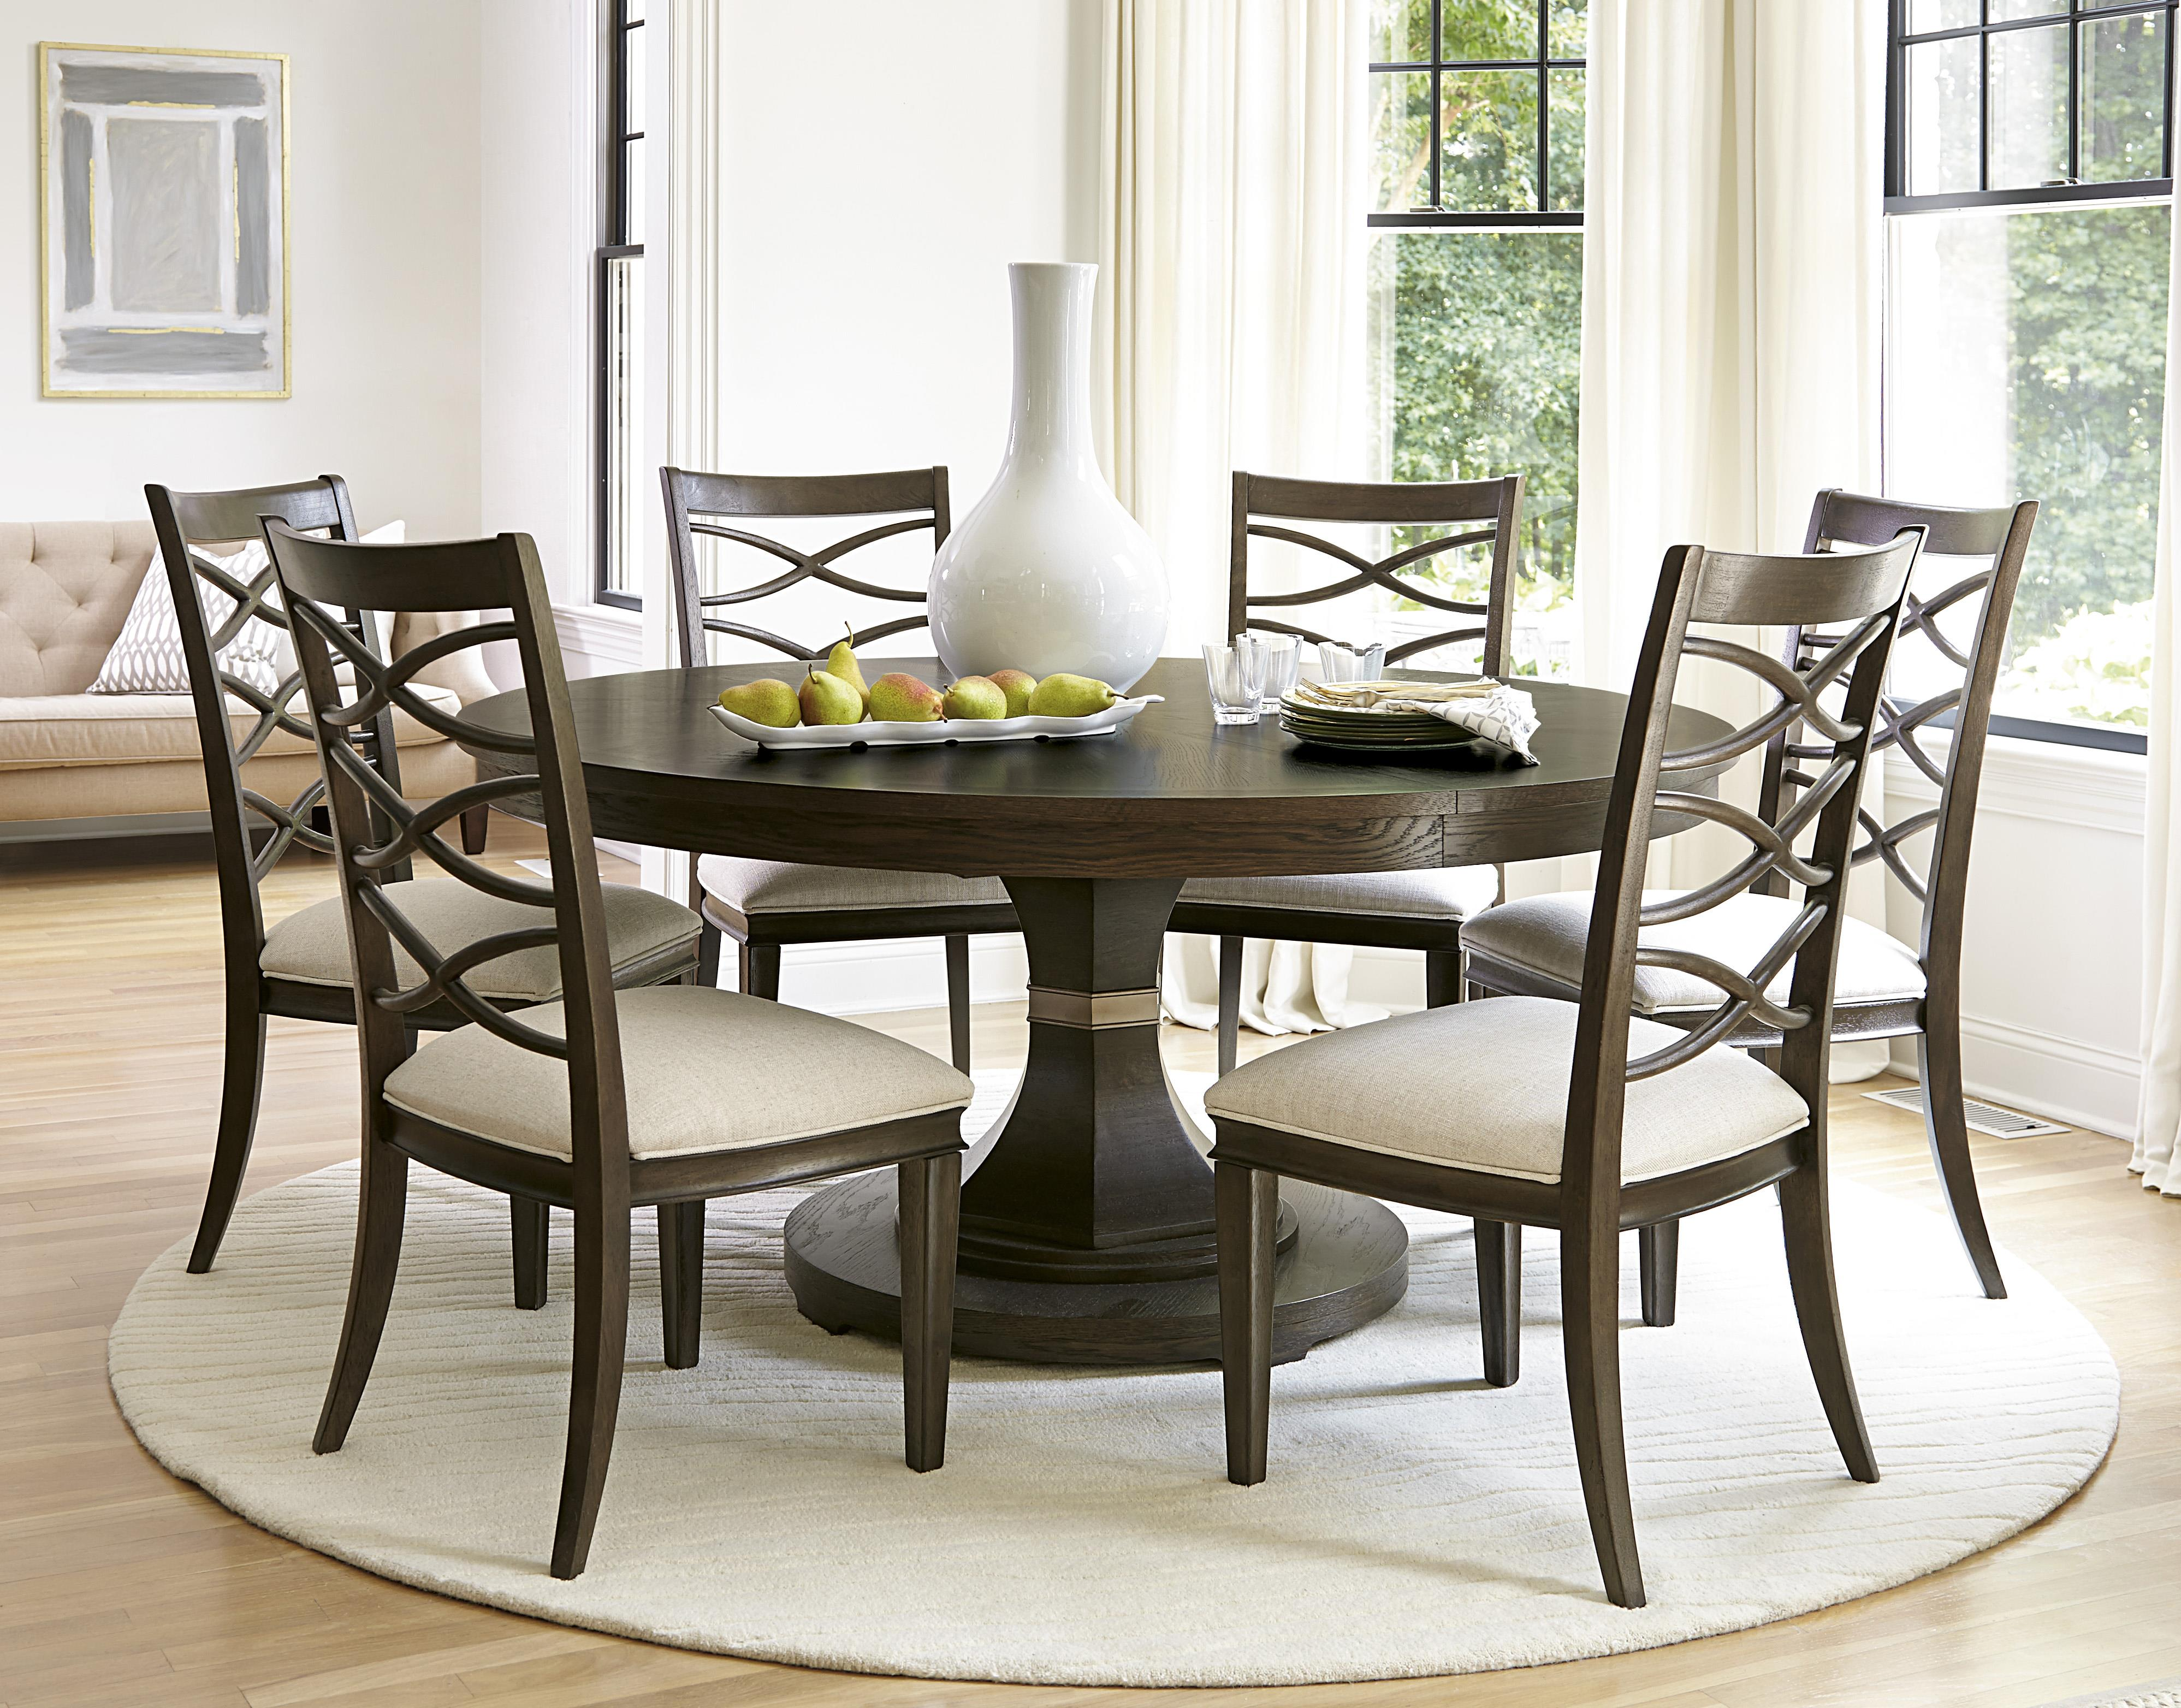 Universal California   Hollywood Hills 7 Piece Dining Set With Round Table  And X Back Chairs   Wayside Furniture   Dining 7 (or More) Piece Set